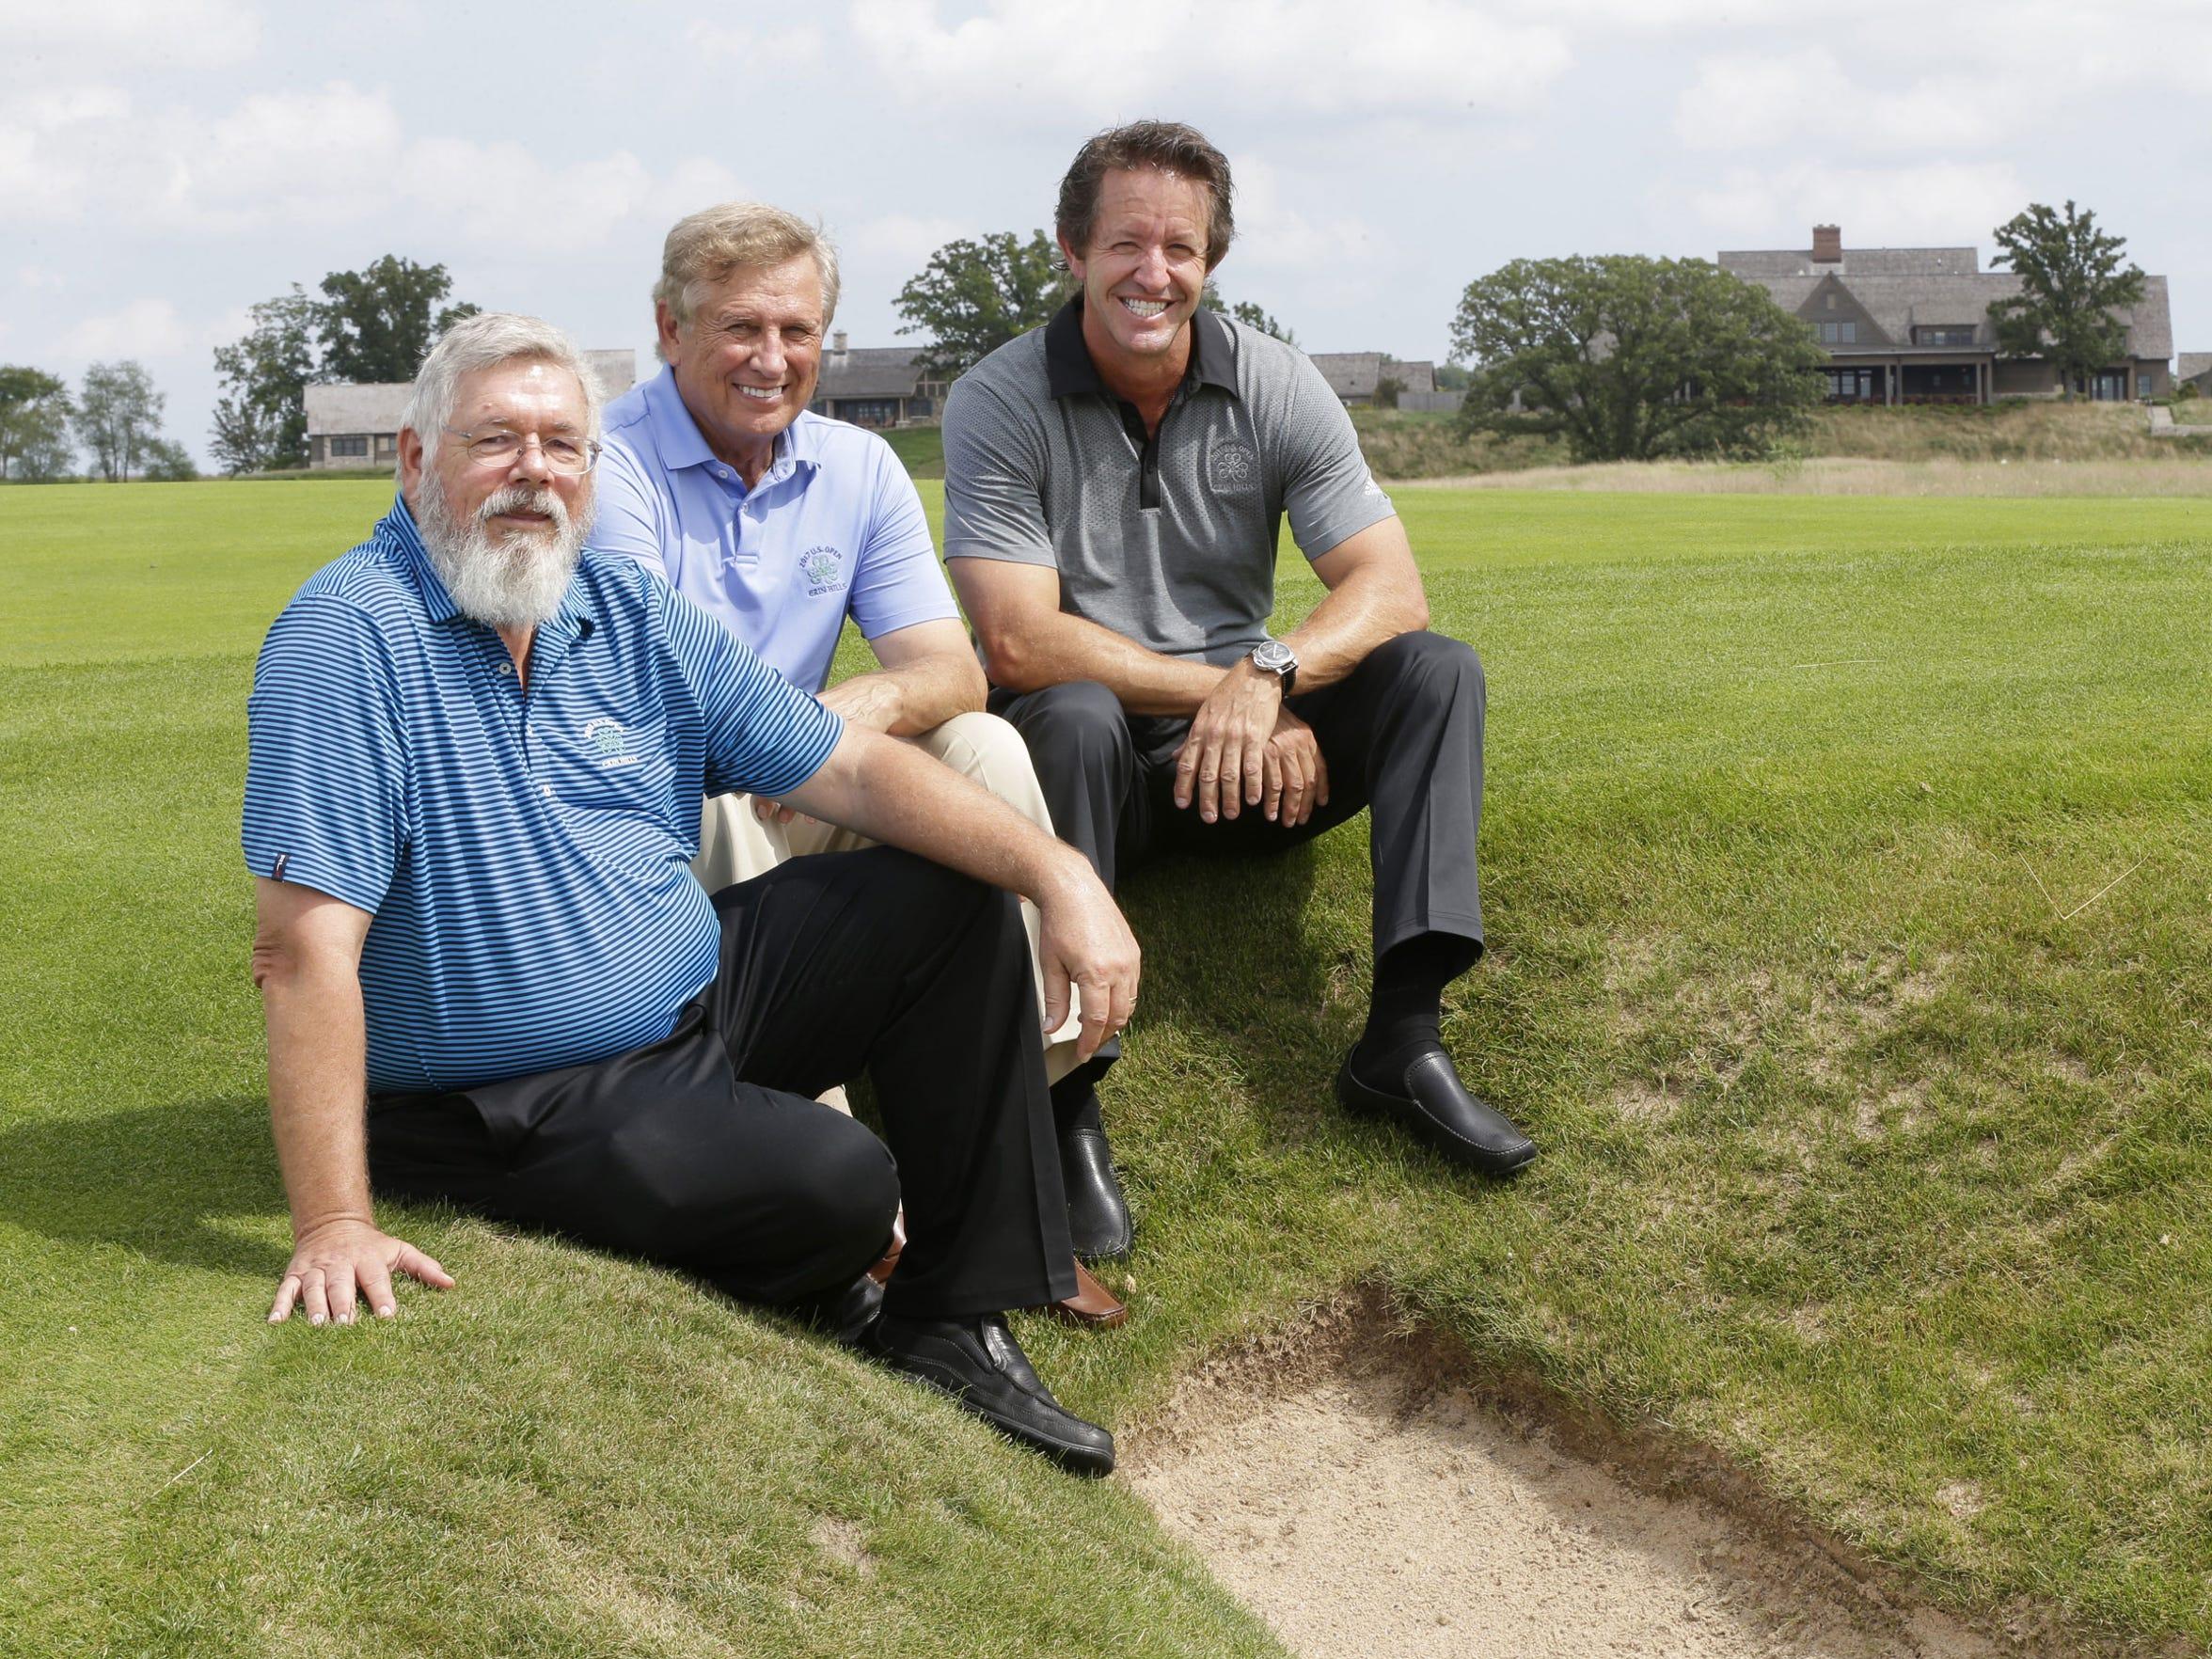 Erin Hills' architects Ron Whitten (from left), Michael Hurdzan and Dana Fry sit next to a bunker on the ninth hole.